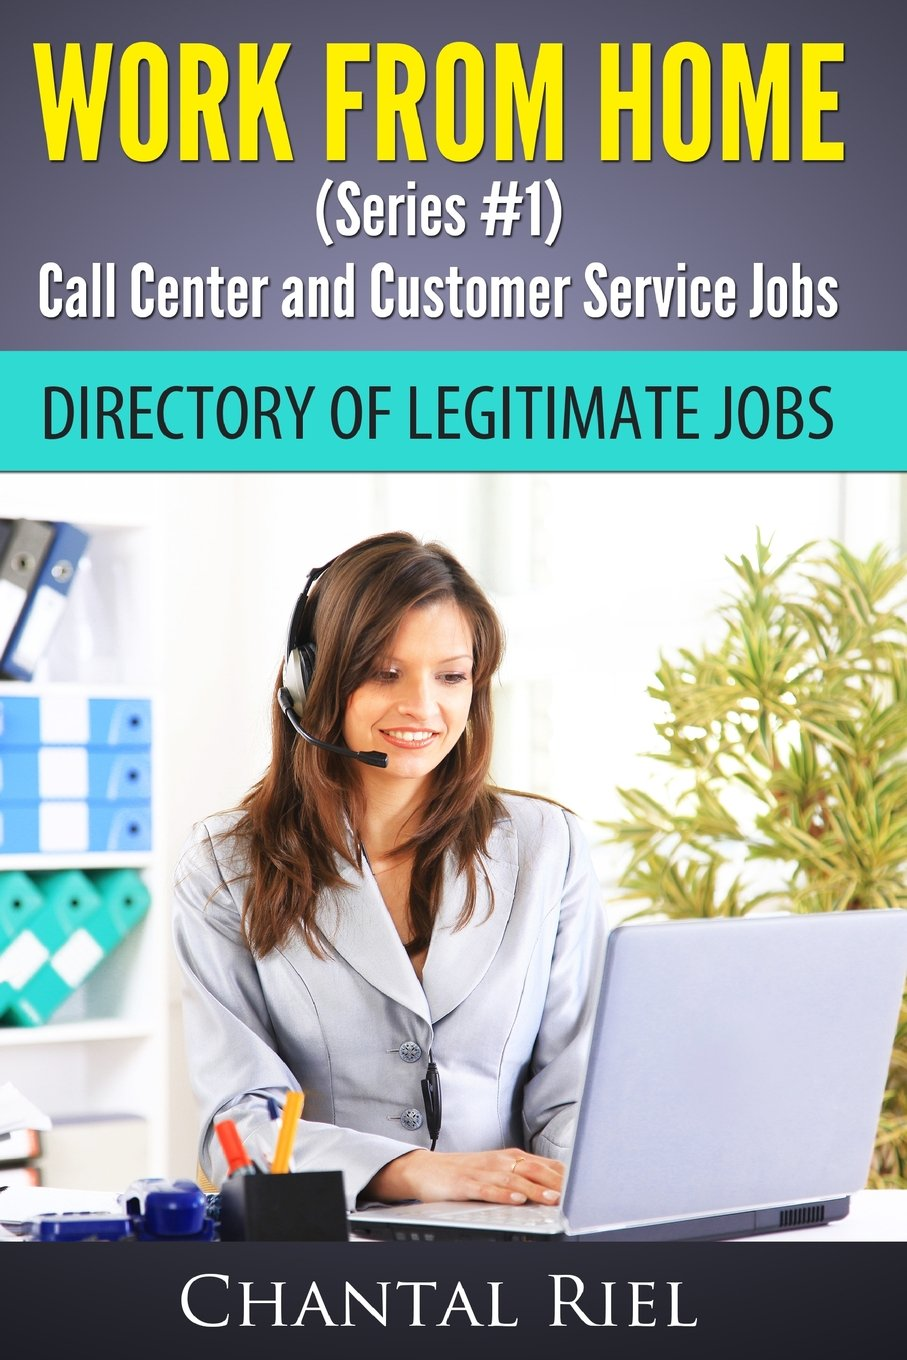 WORK FROM HOME (Series #1) Call Center and Customer Service Jobs: Directory  of Legitimate Jobs (Volume 1): Chantal Riel: 9781490422817: Amazon.com:  Books